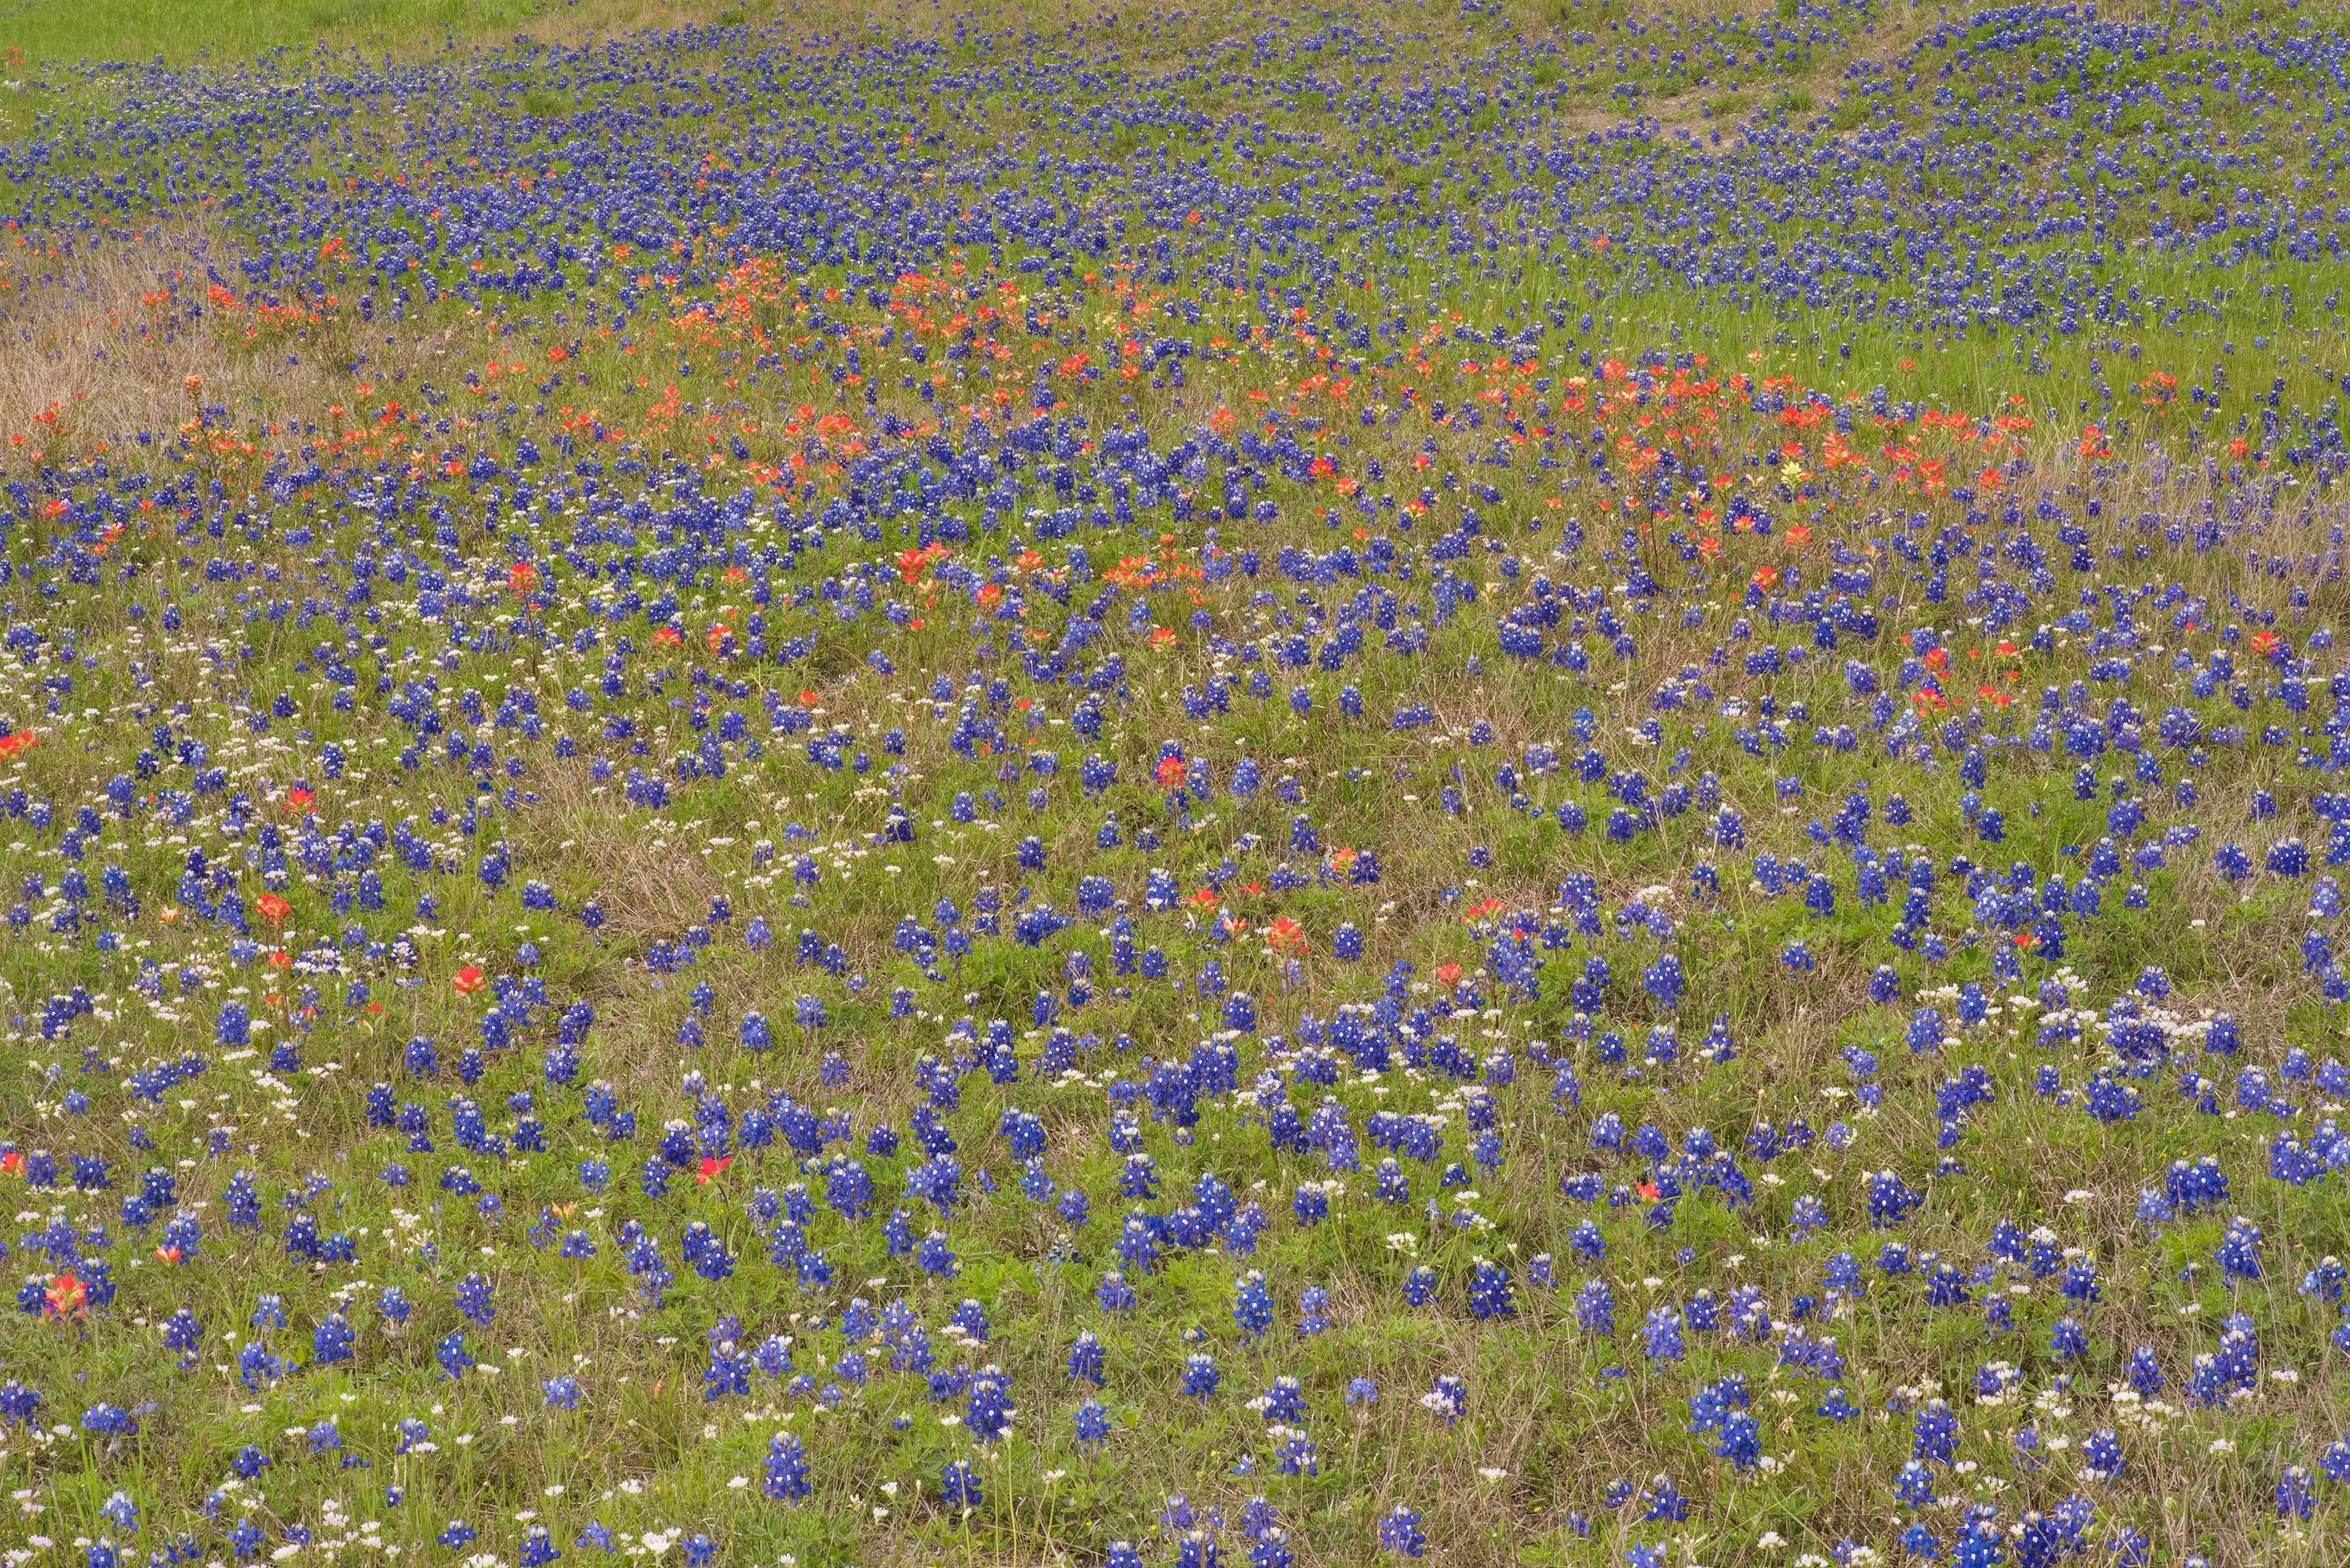 Roadside flowers in Old Baylor Park. Independence, Texas